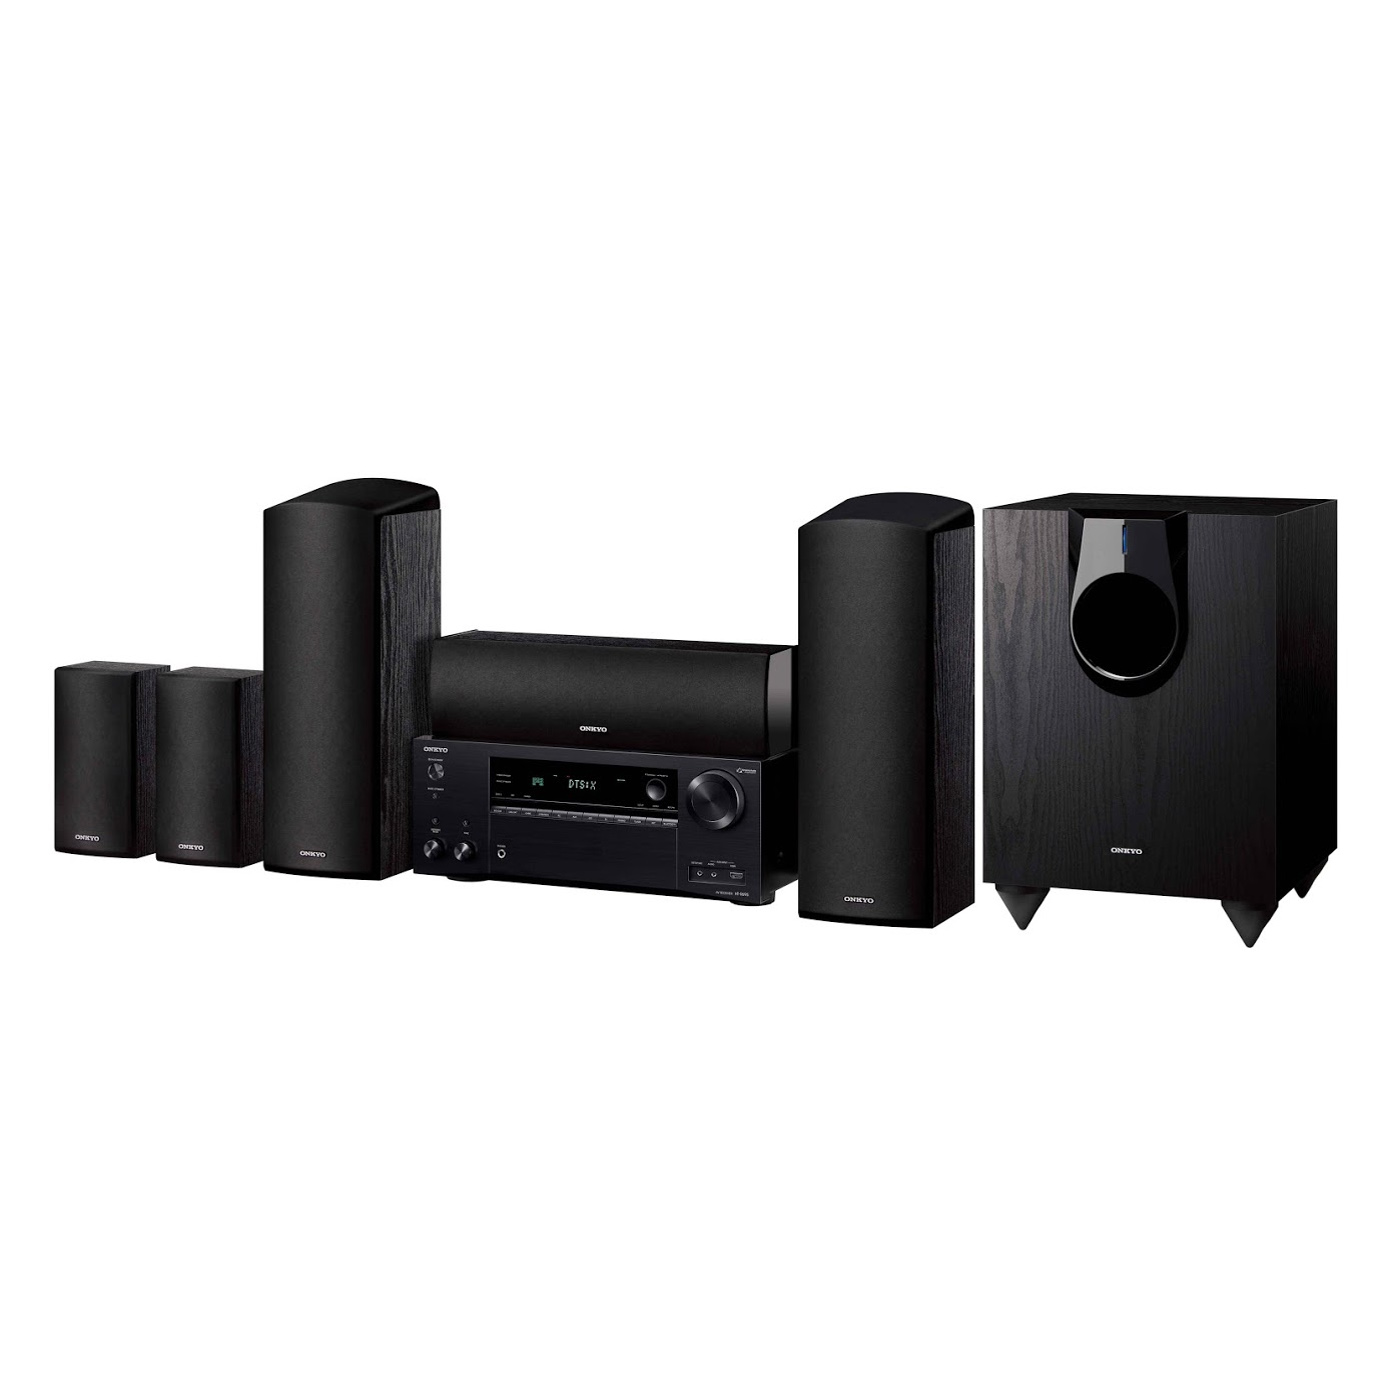 Onkyo HT-S7800 5.1.2 Channel Network Dolby Atmos Home Theater System by Onkyo